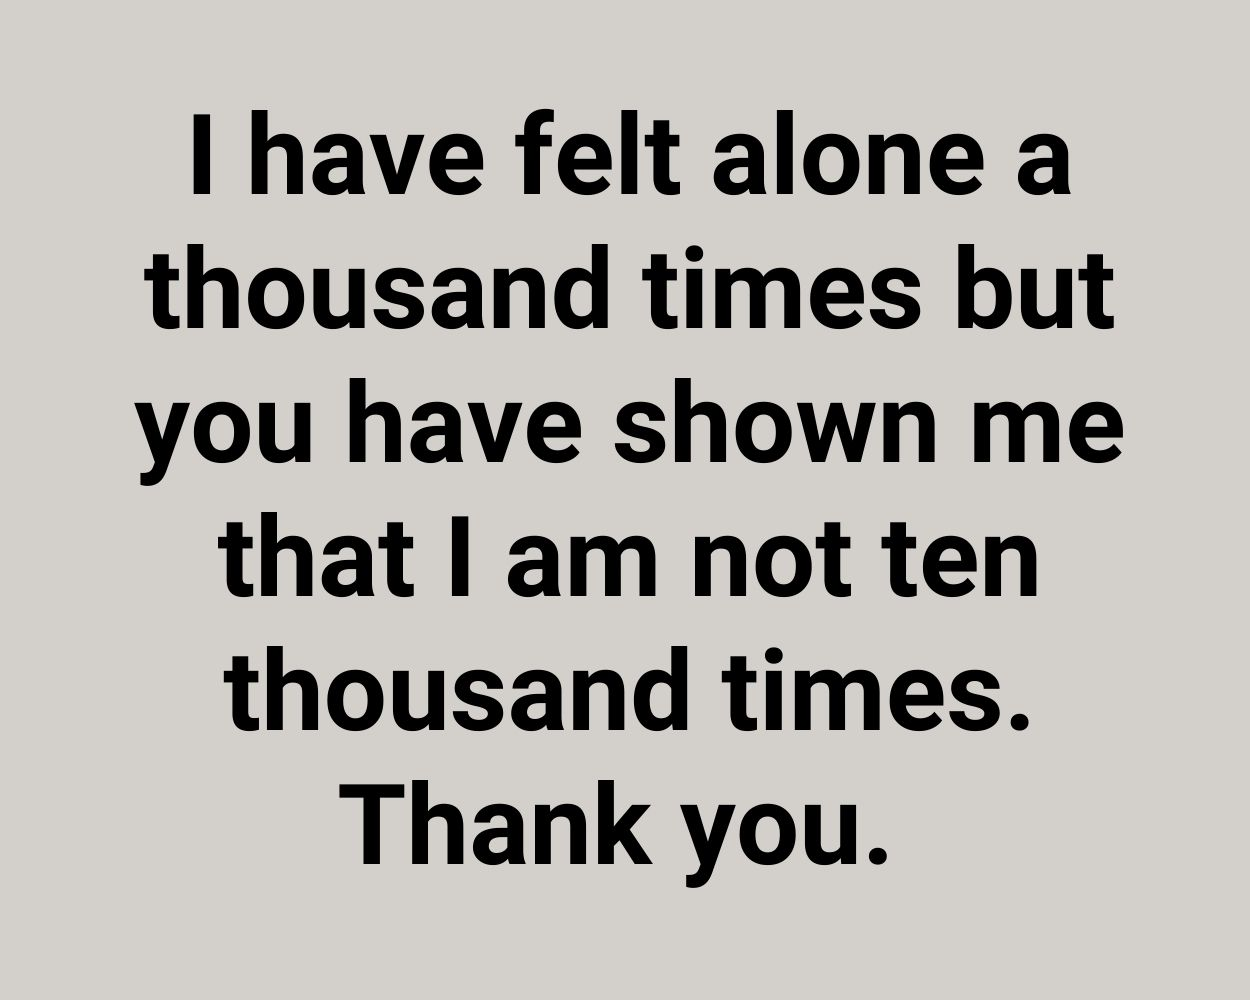 I have felt alone a thousand times but you have shown me that I am not ten thousand times. Thank you.